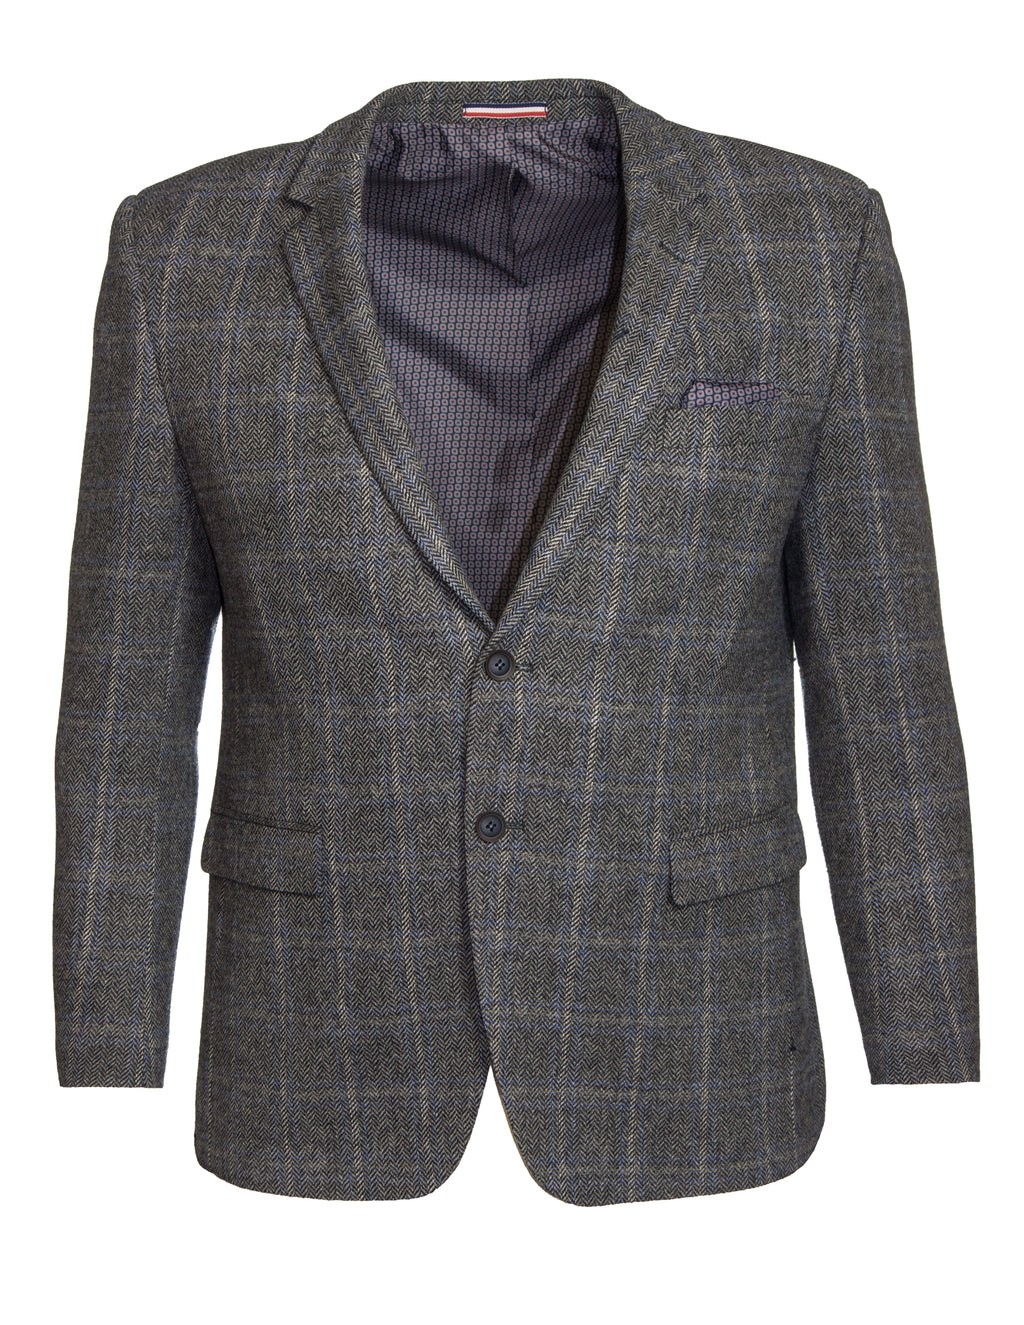 Daniel Hechter DH378 Tweed Shape Coat